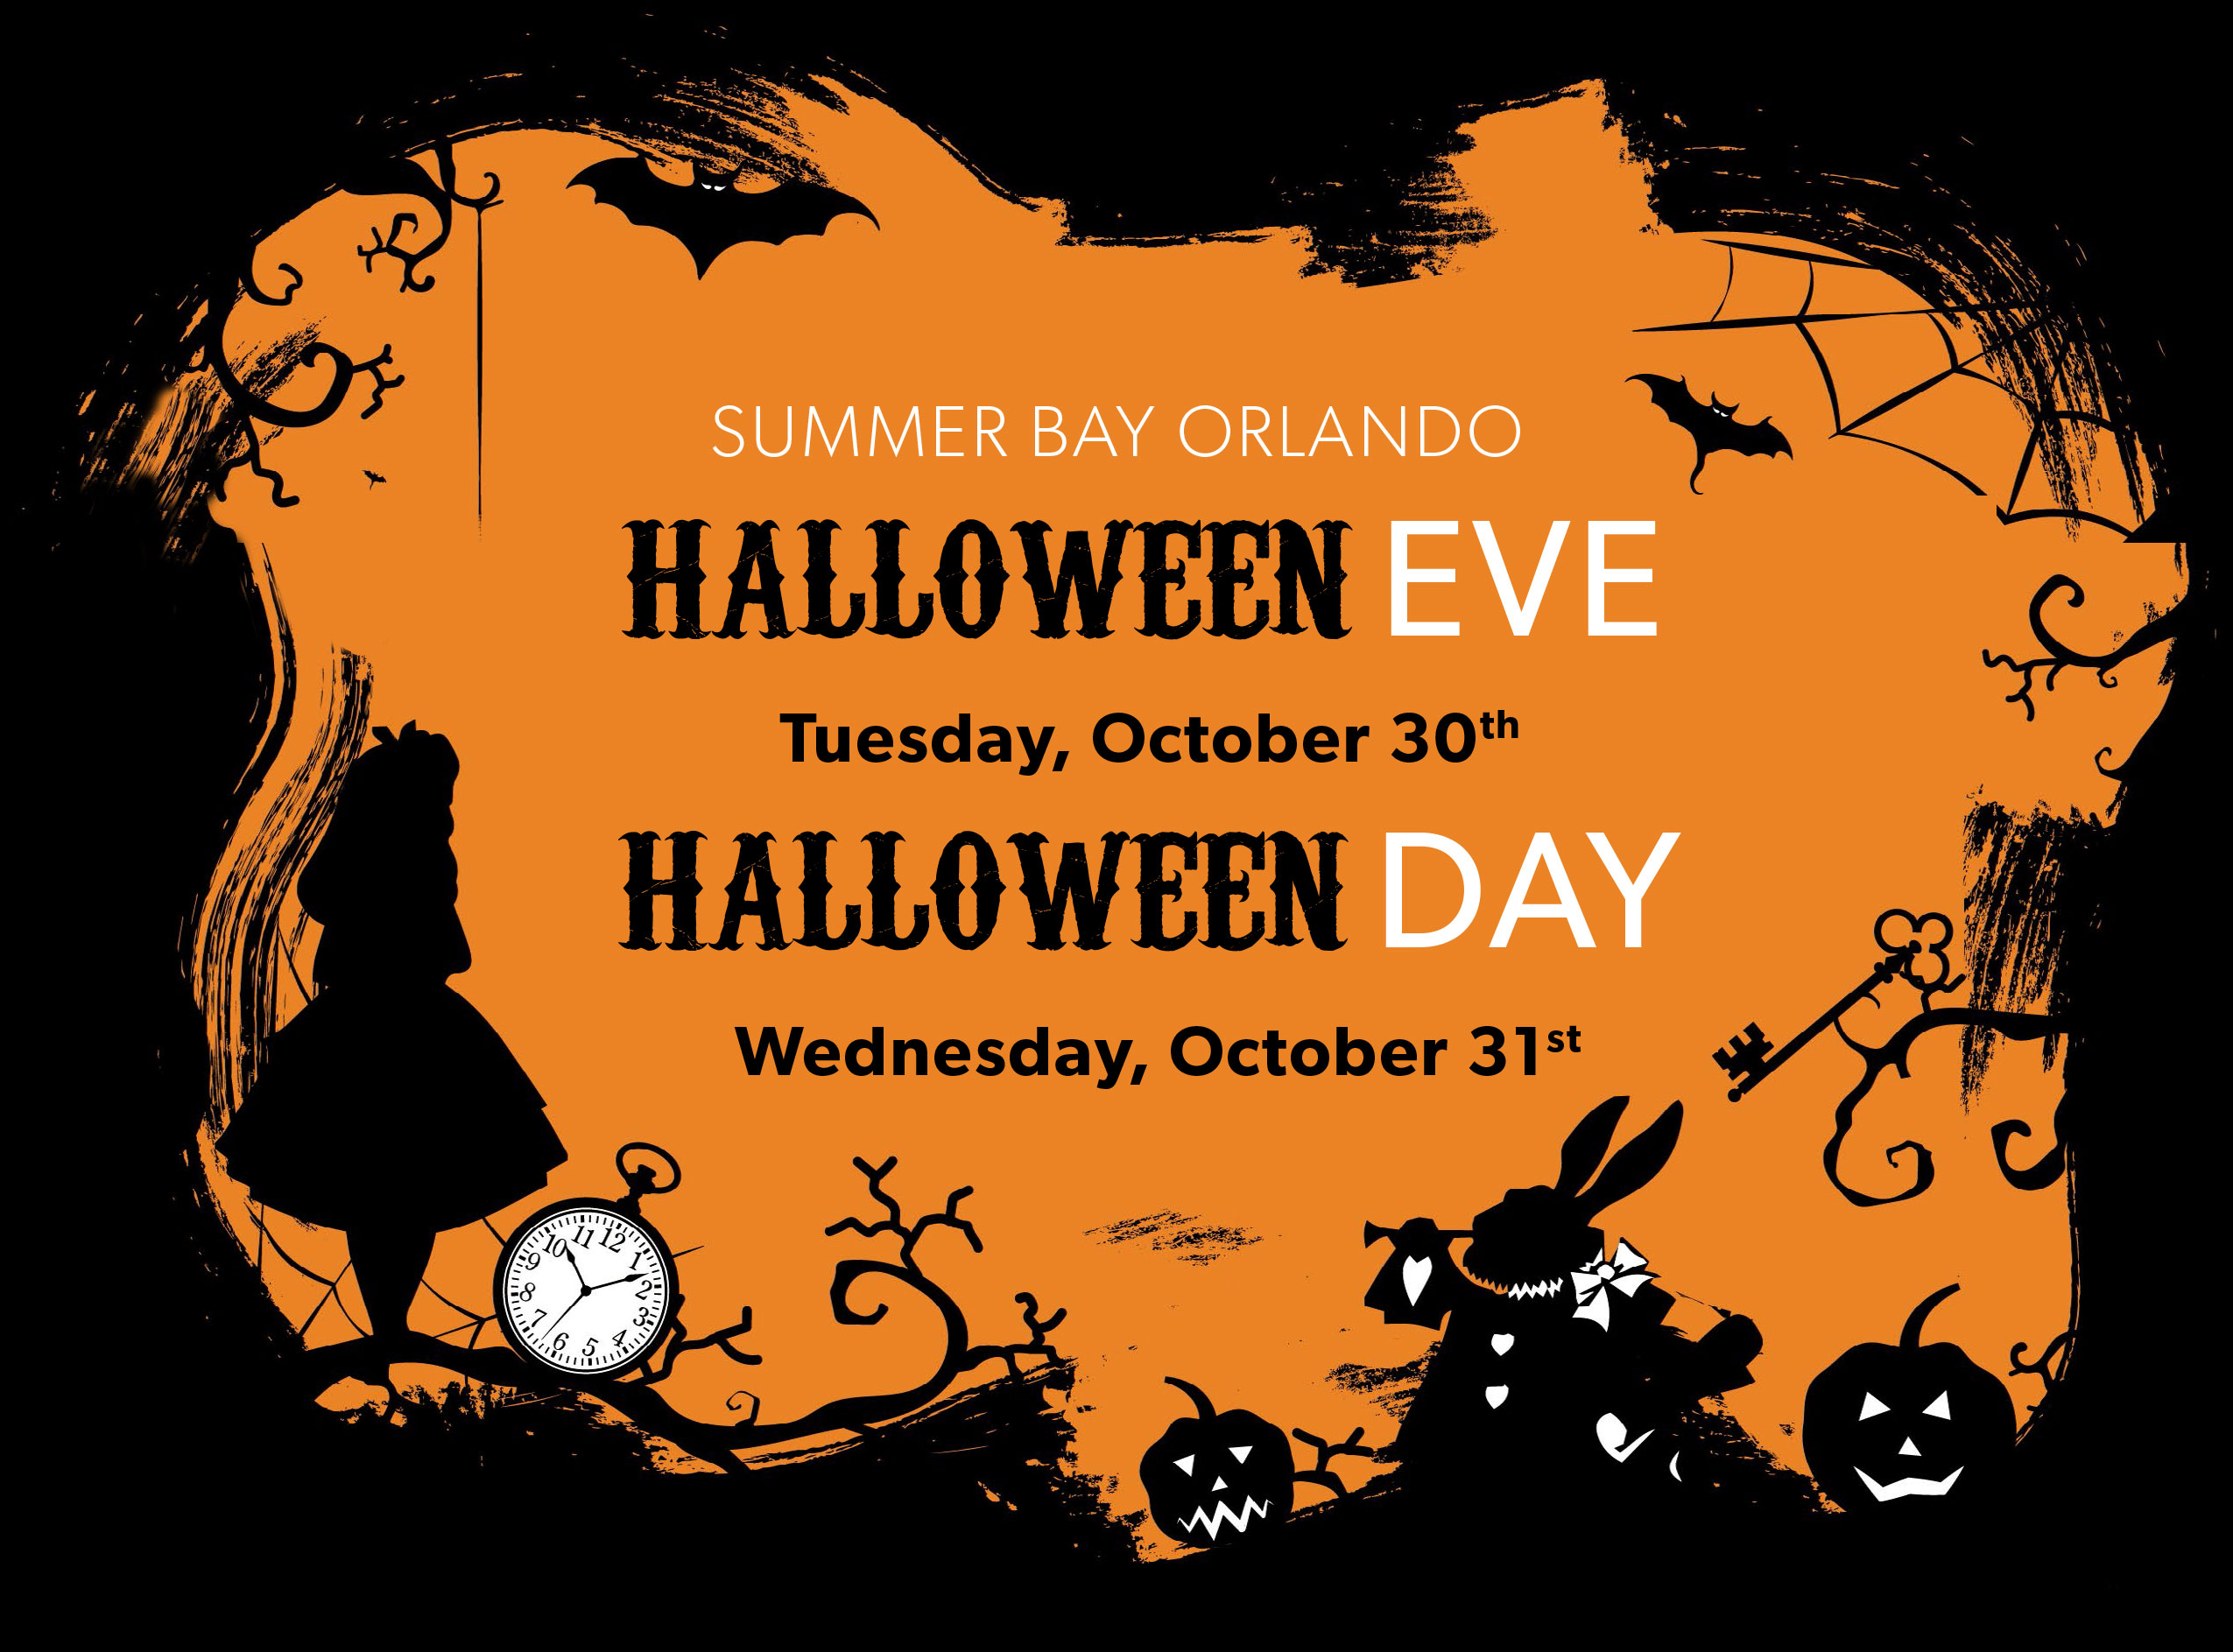 Halloween at Summer Bay Orlando